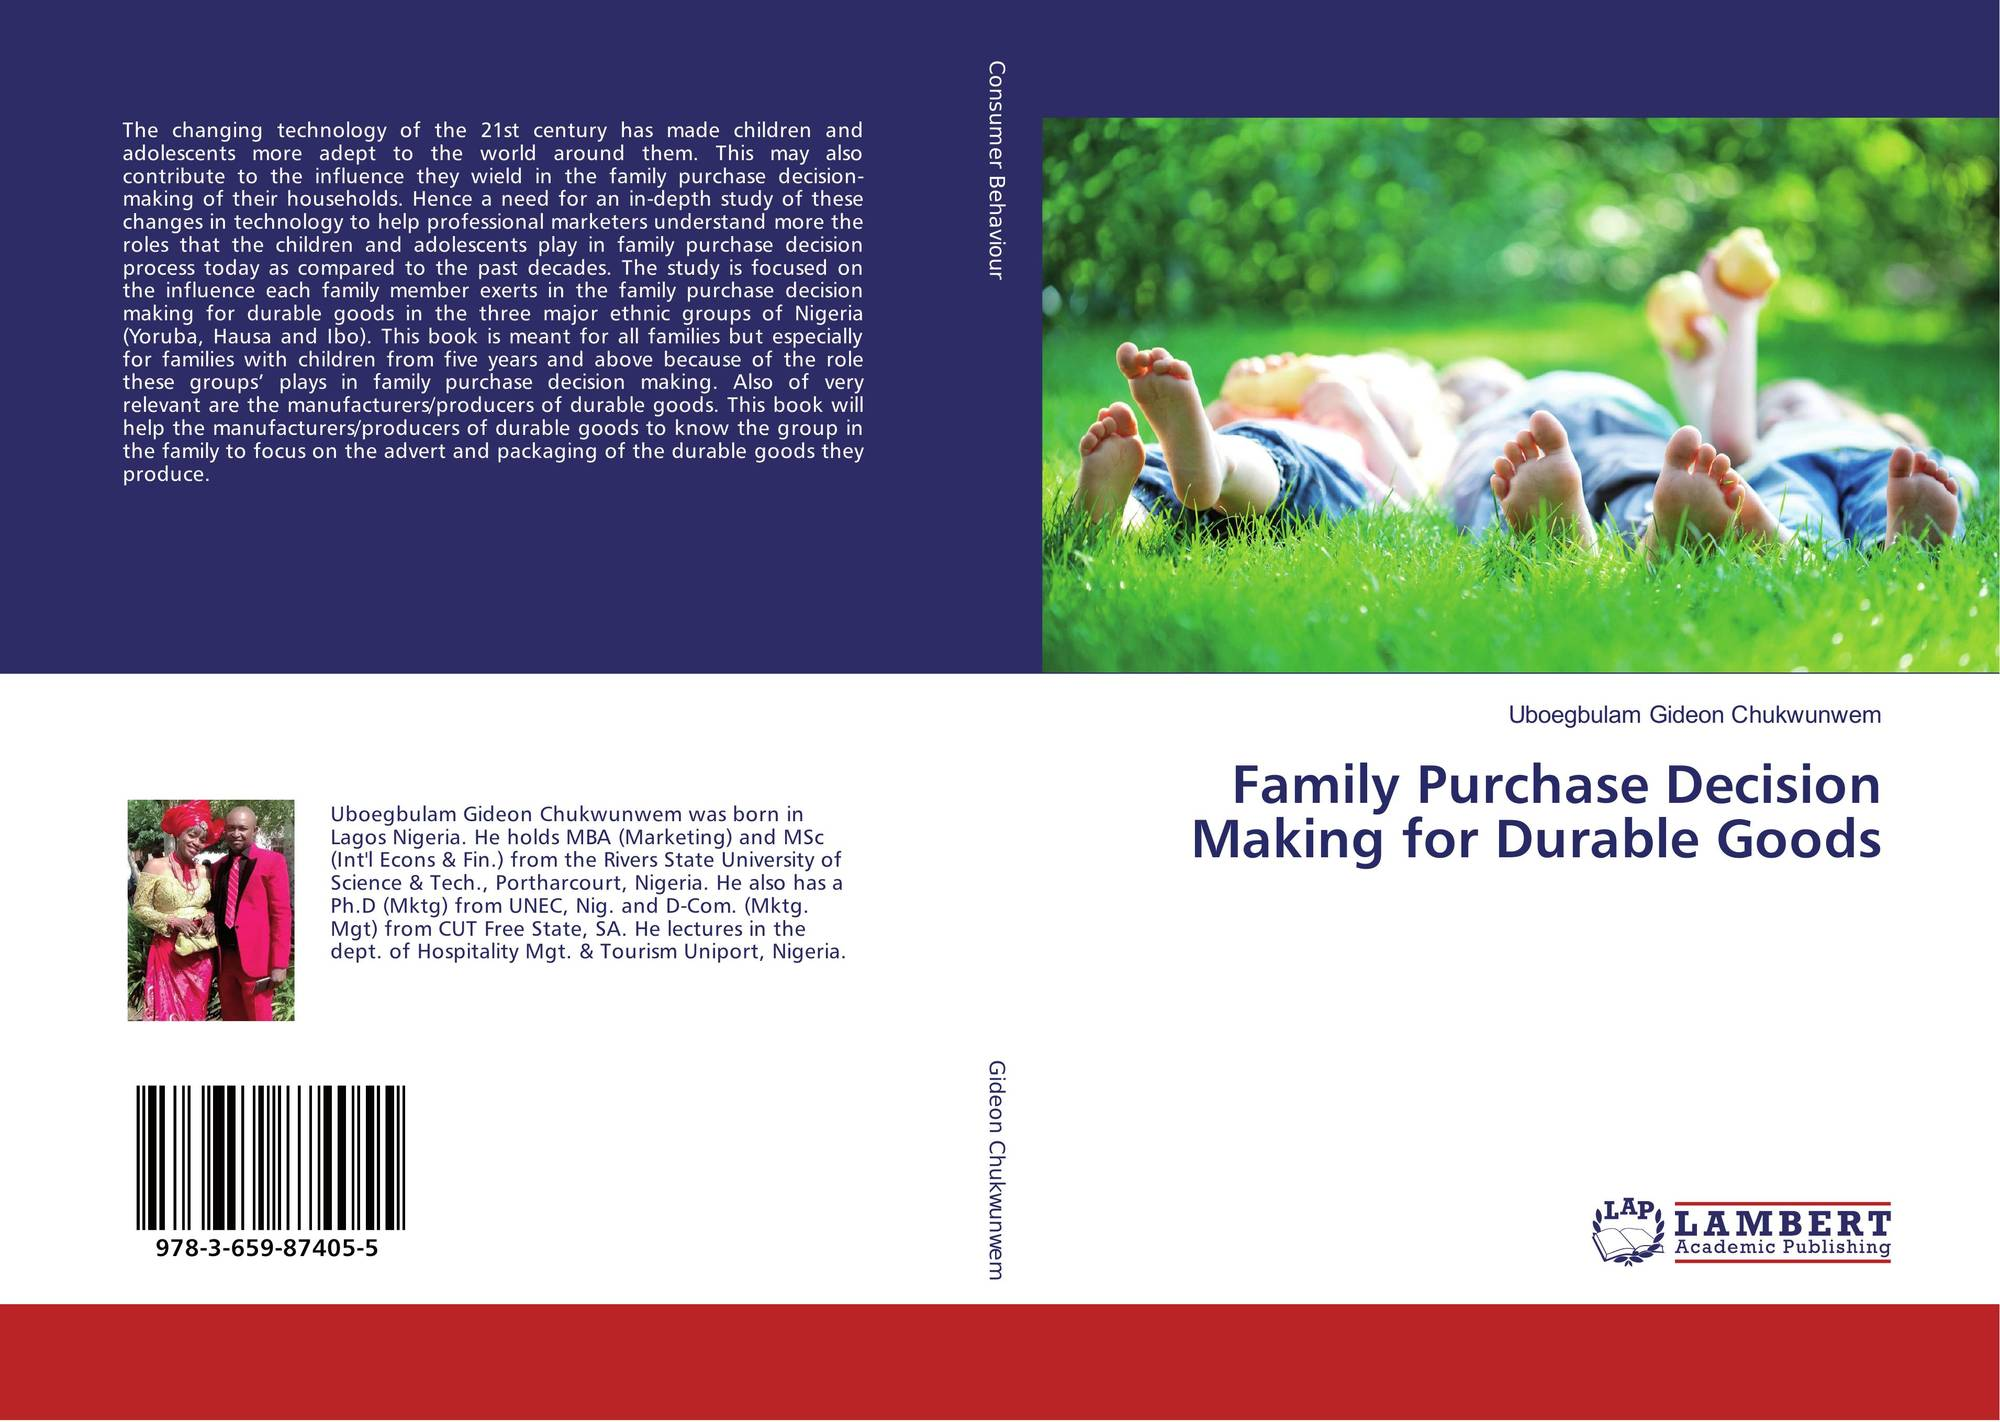 family buying decision The are two different types of family decisions families make, they can either make a consensual purchase decision or an accommodative purchase decision 1 women make more than 80% of the buying decisions in a typical household  6.